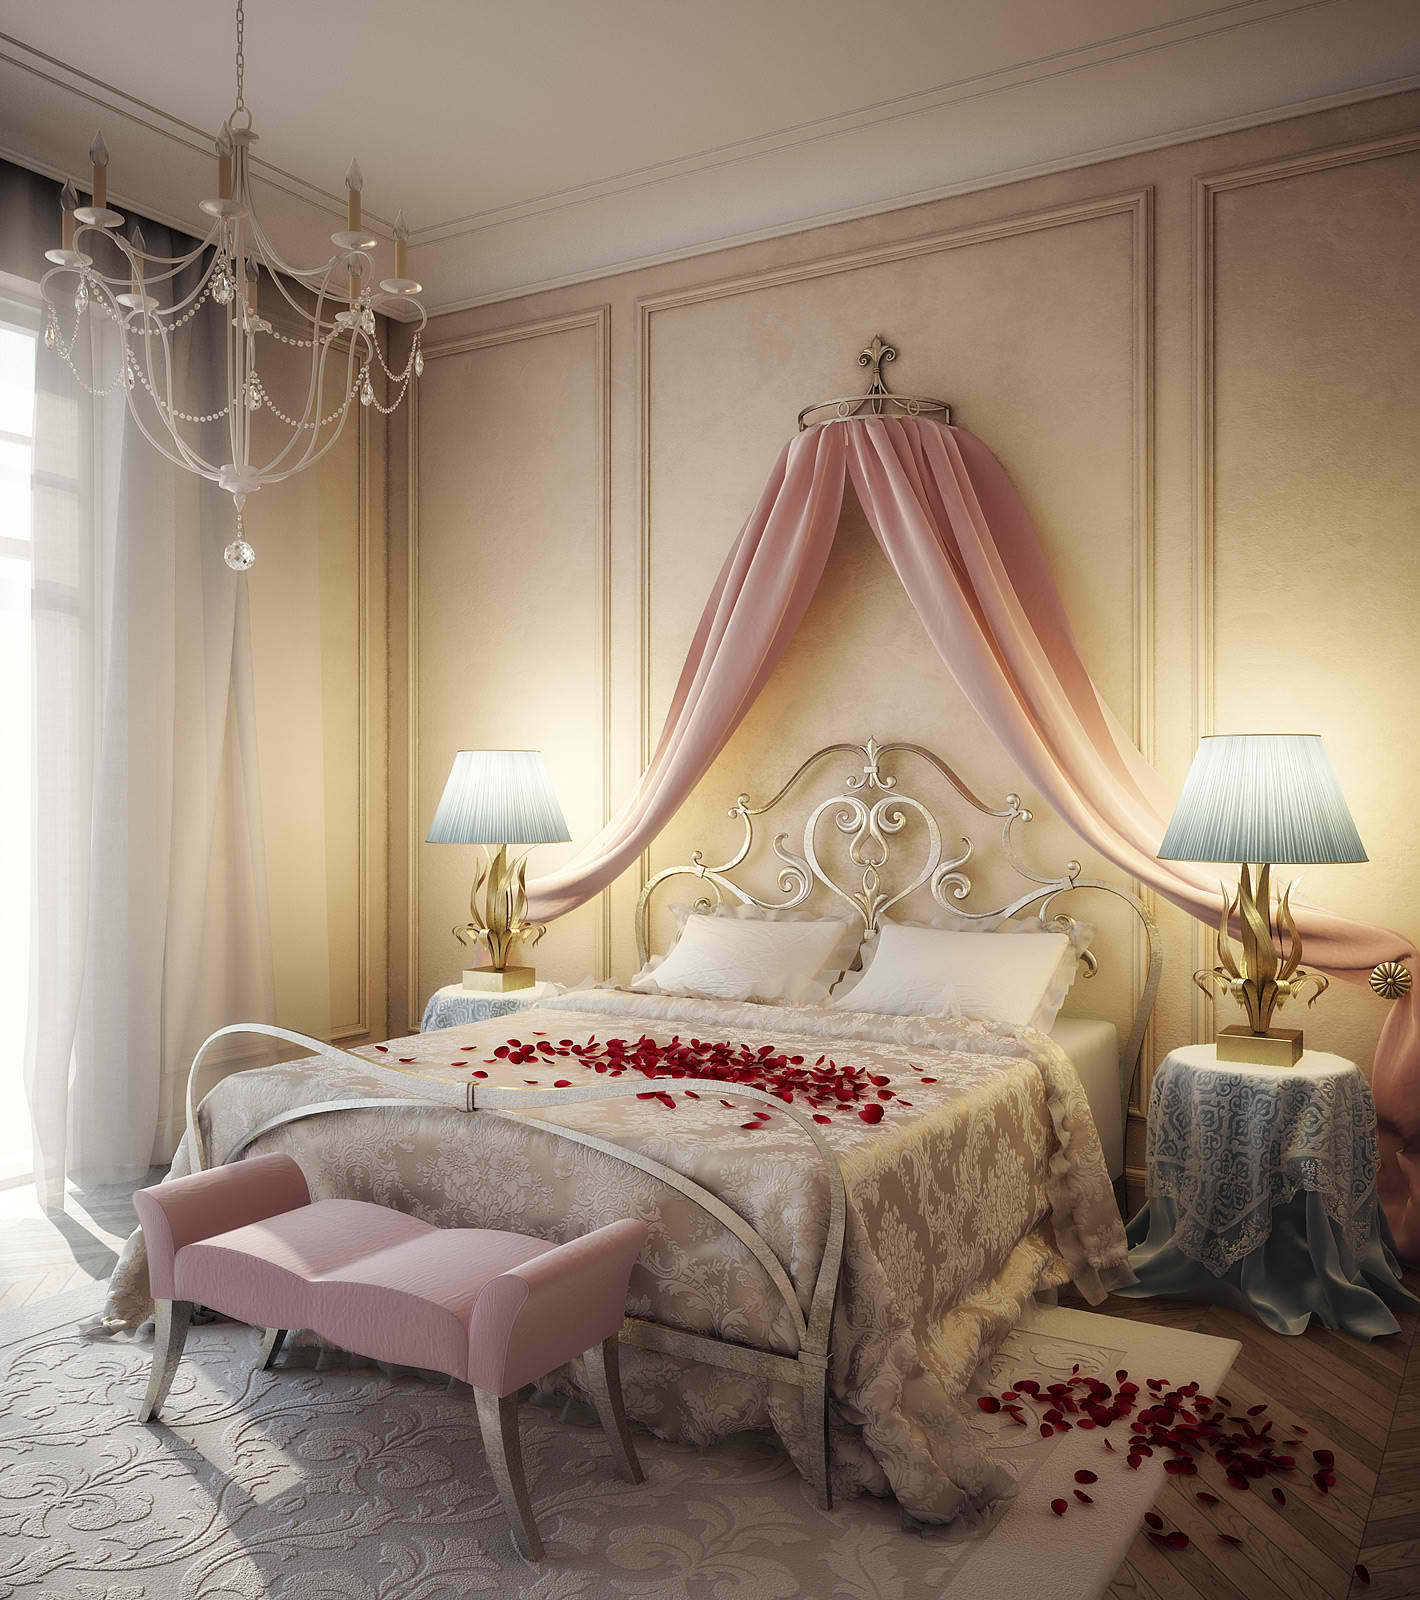 20 romantic bedroom ideas decoholic for Bedroom designs ideas